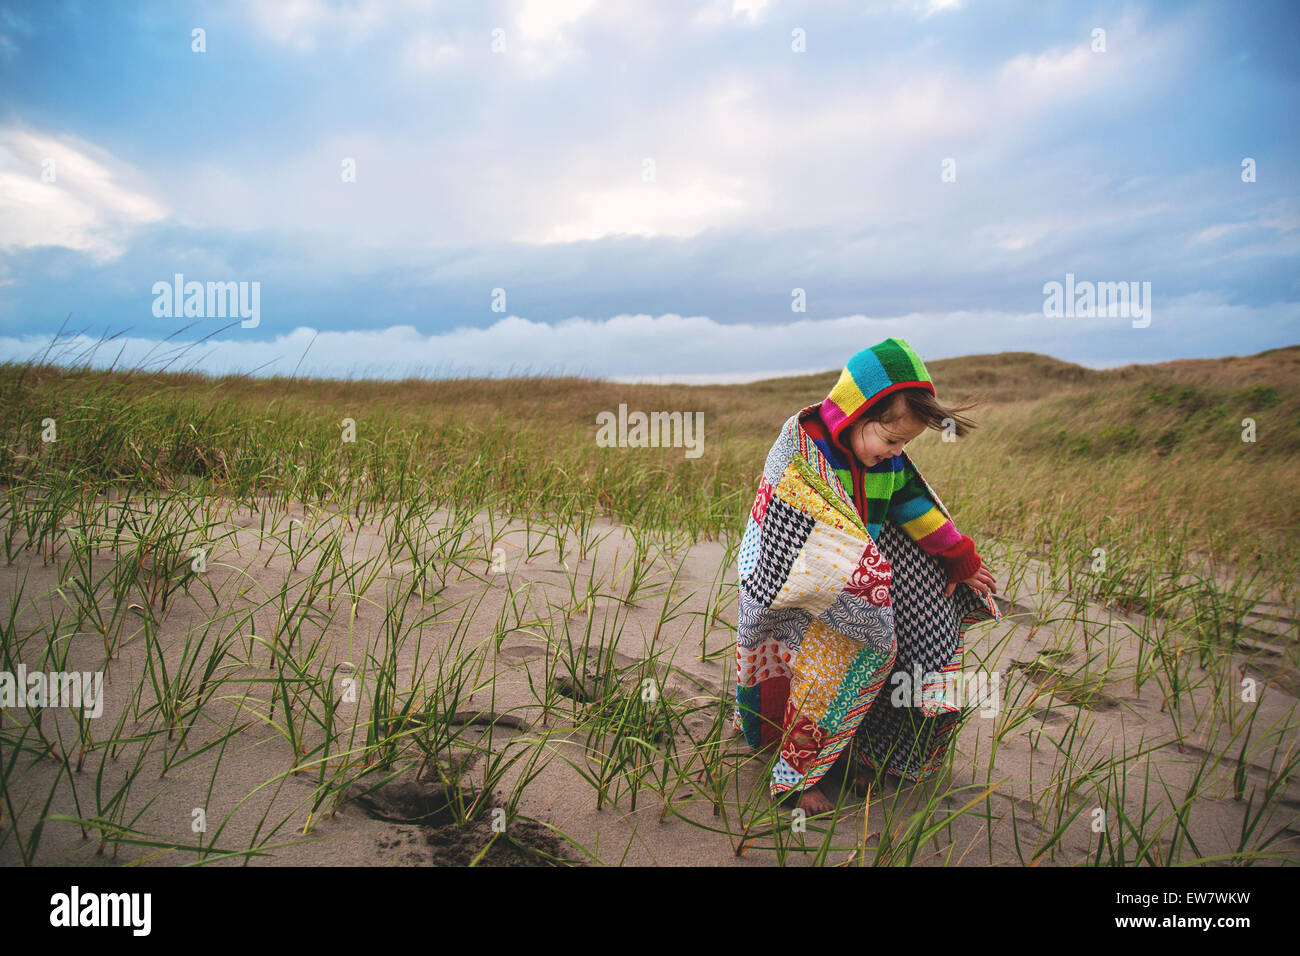 Girl on beach wrapped in a blanket - Stock Image